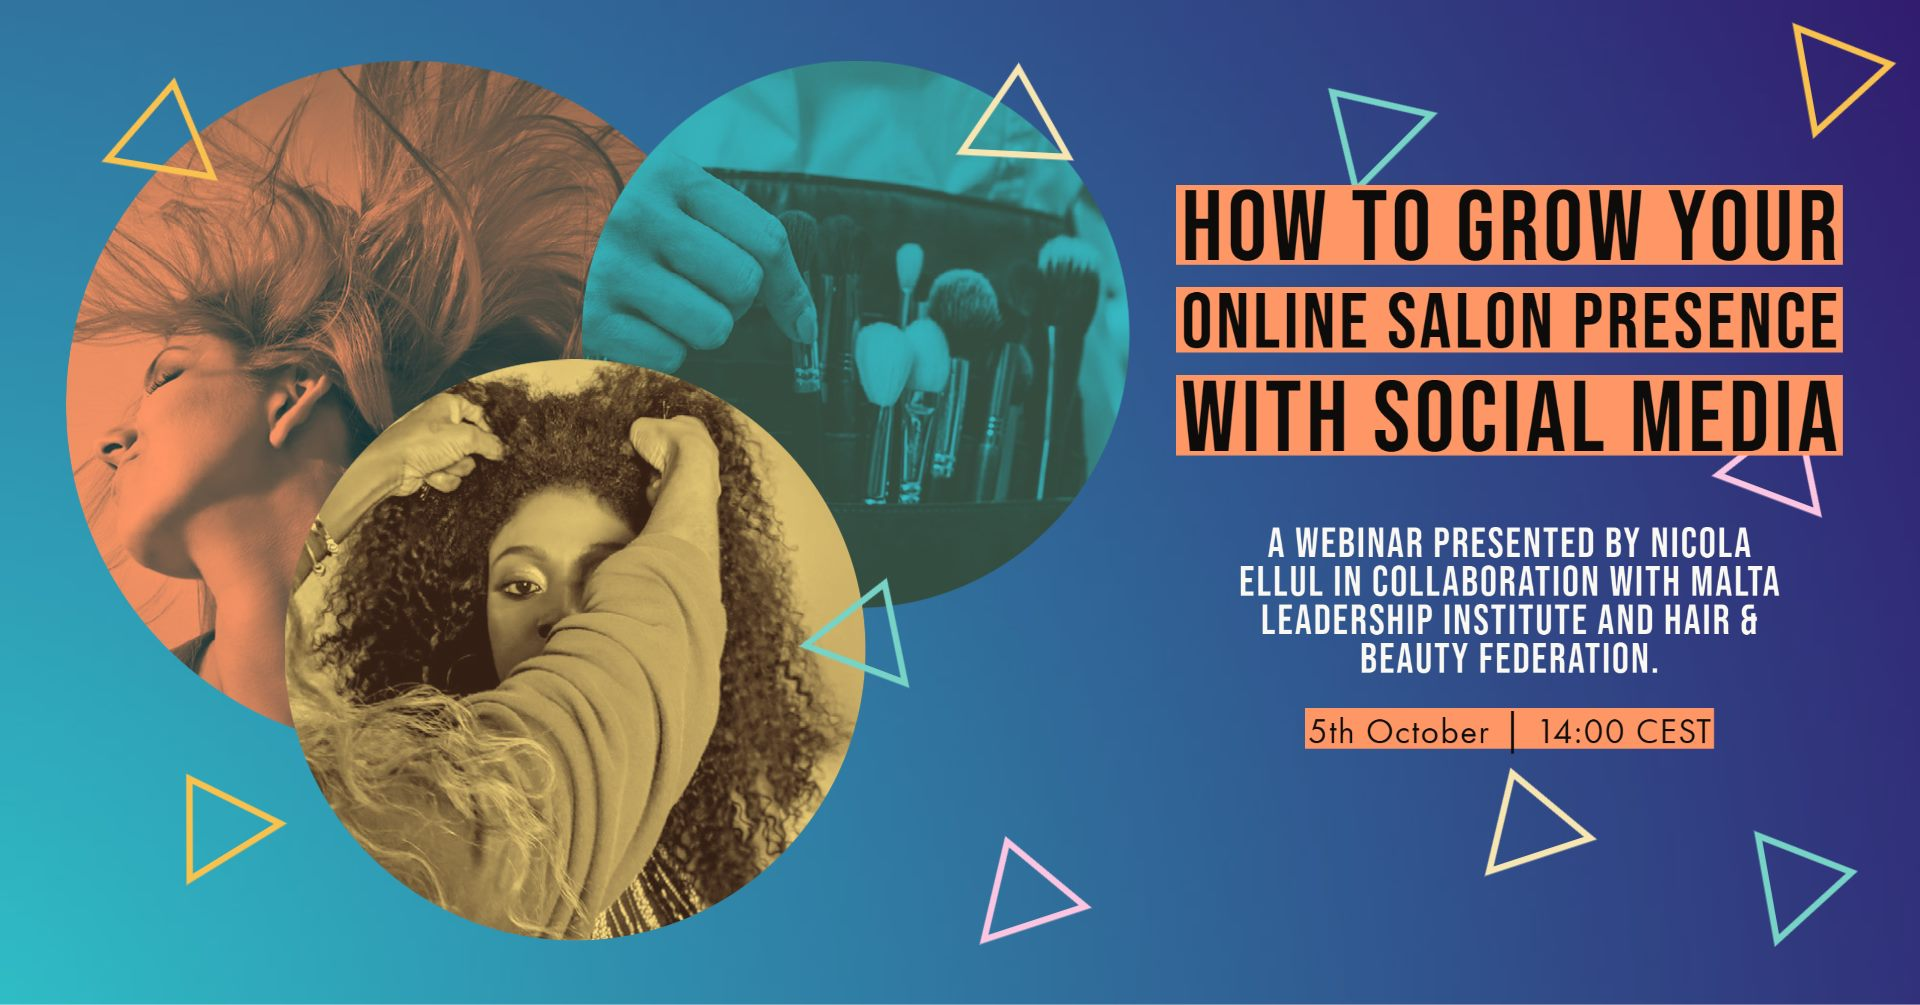 How To Grow Your Online Salon Presence with Social Media